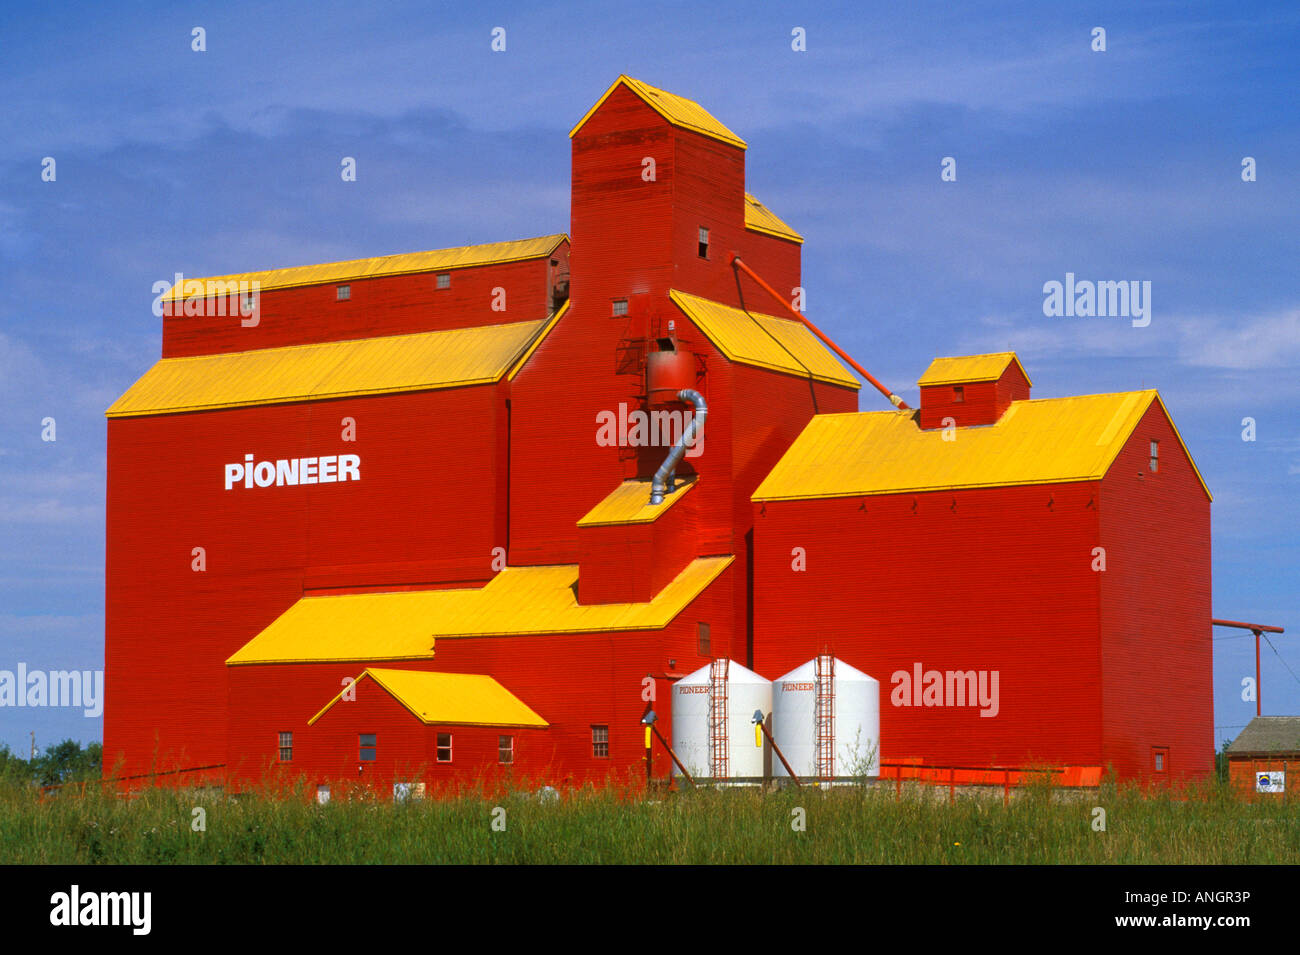 Grain elevator on the prairie, Lajord, Saskatchewan, Canada. Stock Photo